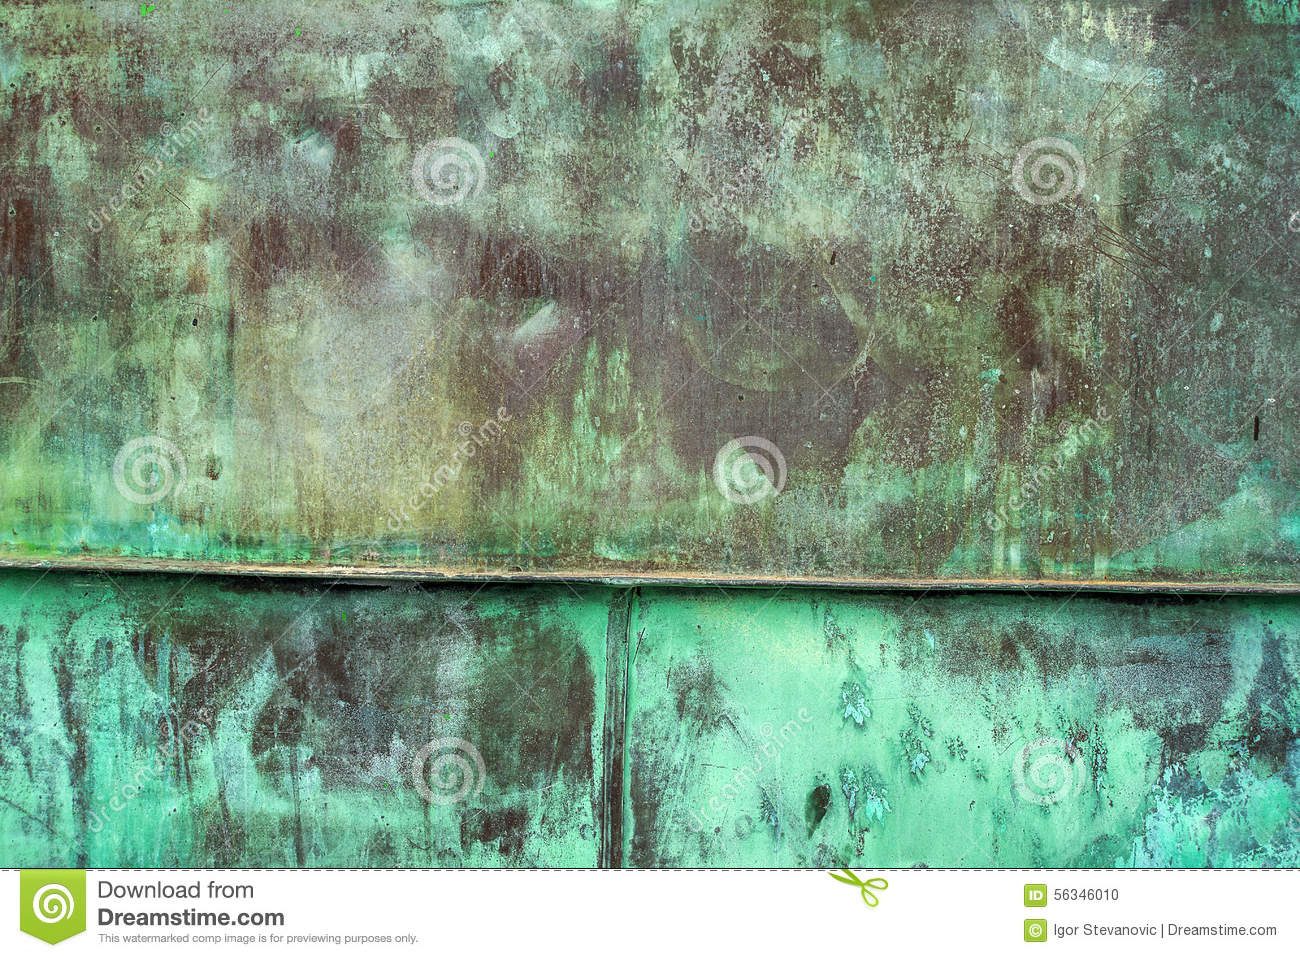 Download Oxidized Green Copper Plate Texture As Background Stock Photo